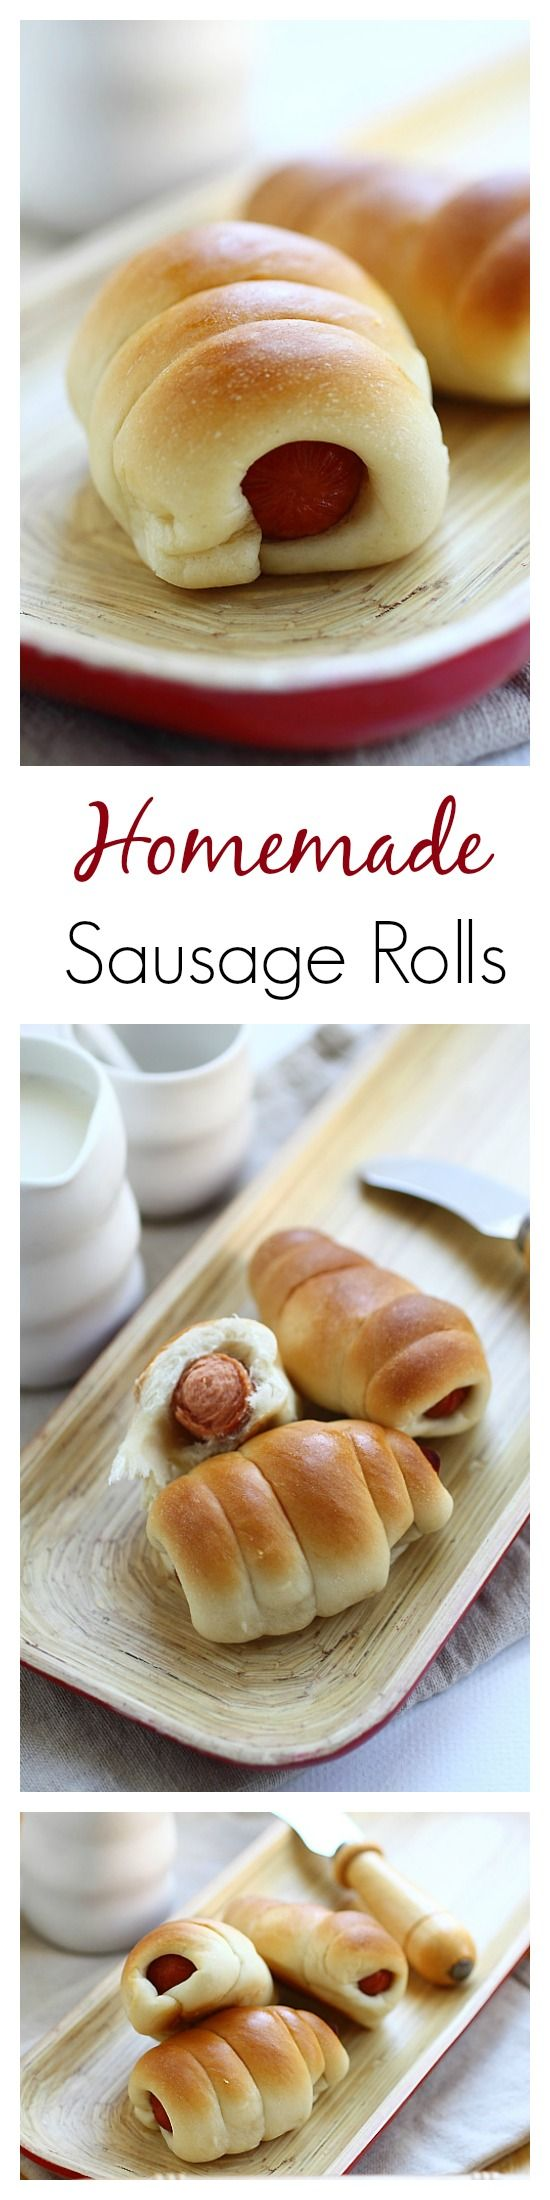 Homemade Sausage Rolls. So soft, so yummy, and wrapped with your favorite sausage. Get the recipe now | http://rasamalaysia.com